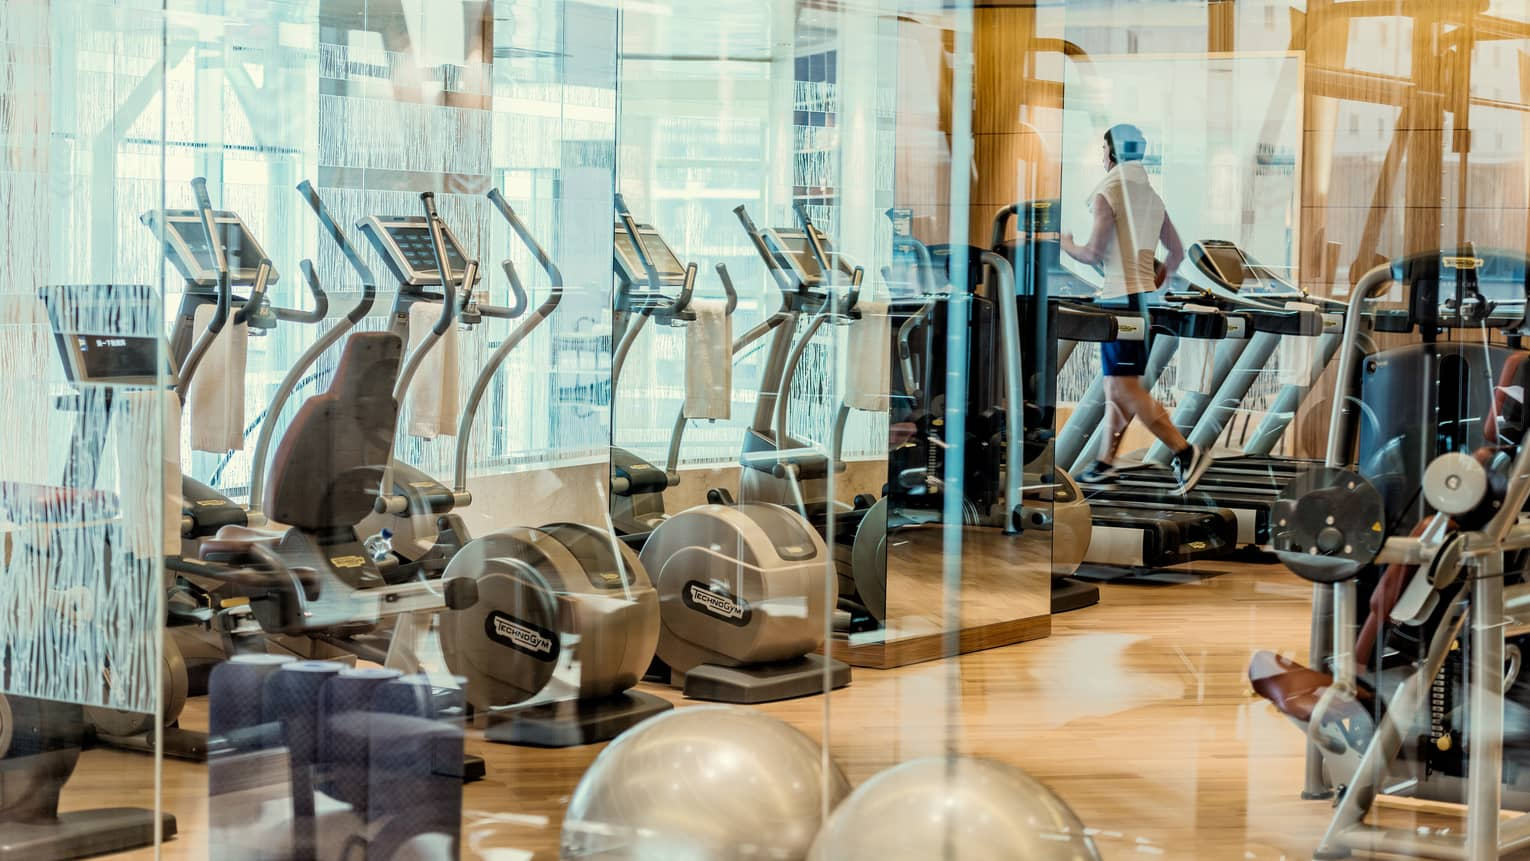 Rows of cardio machines, glass partitions in fitness centre Health Club